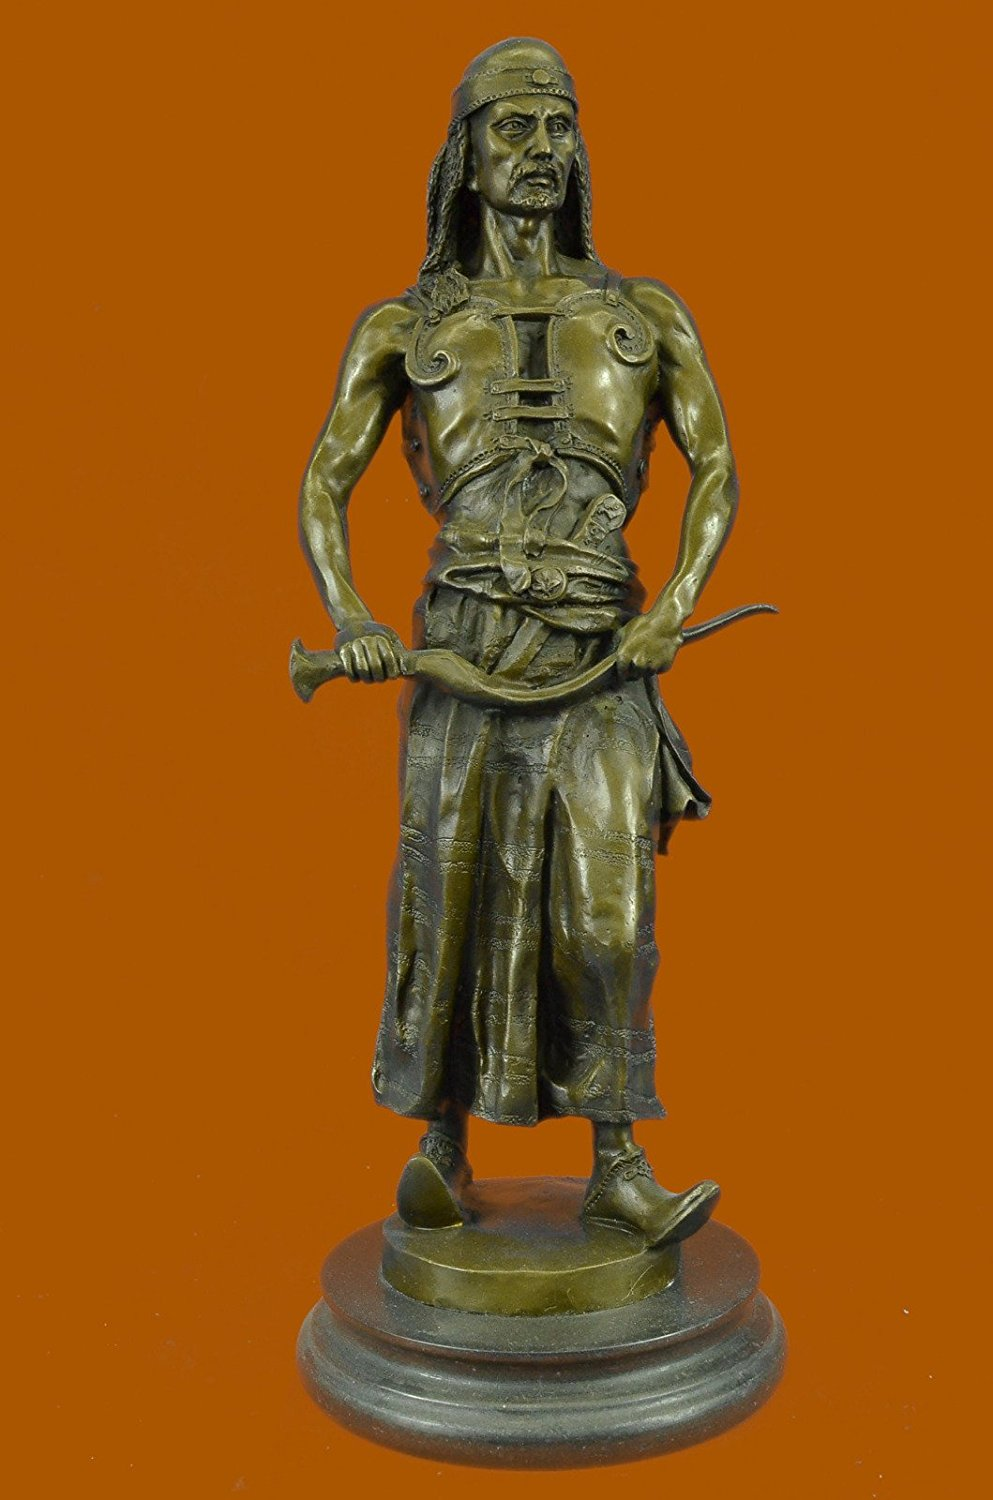 ...Handmade...European Bronze Sculpture Signed Goudray L'Emir Nomadic Arab Middle Eastern Chief Sword (STE-269-UK) Bronze Sculpture Statues Figurine Nude Office & Home Décor Collectibles Sale Deal Gi